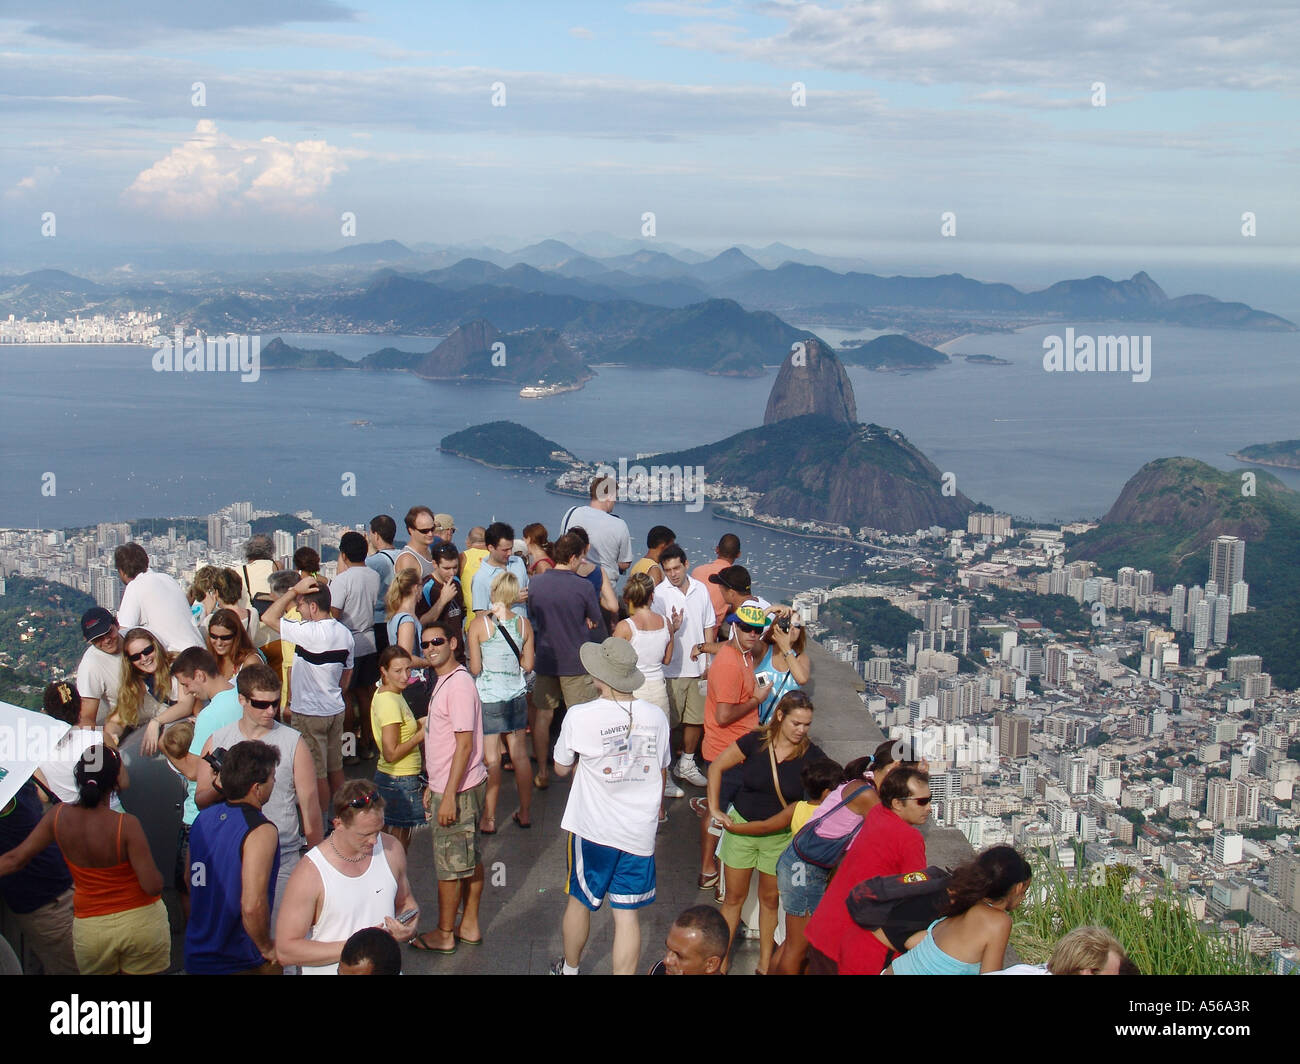 Painet iy8155 brazil tourists enjoying panorama rio janeiro corcovado peak site statue christ redeemer 2005 country Stock Photo